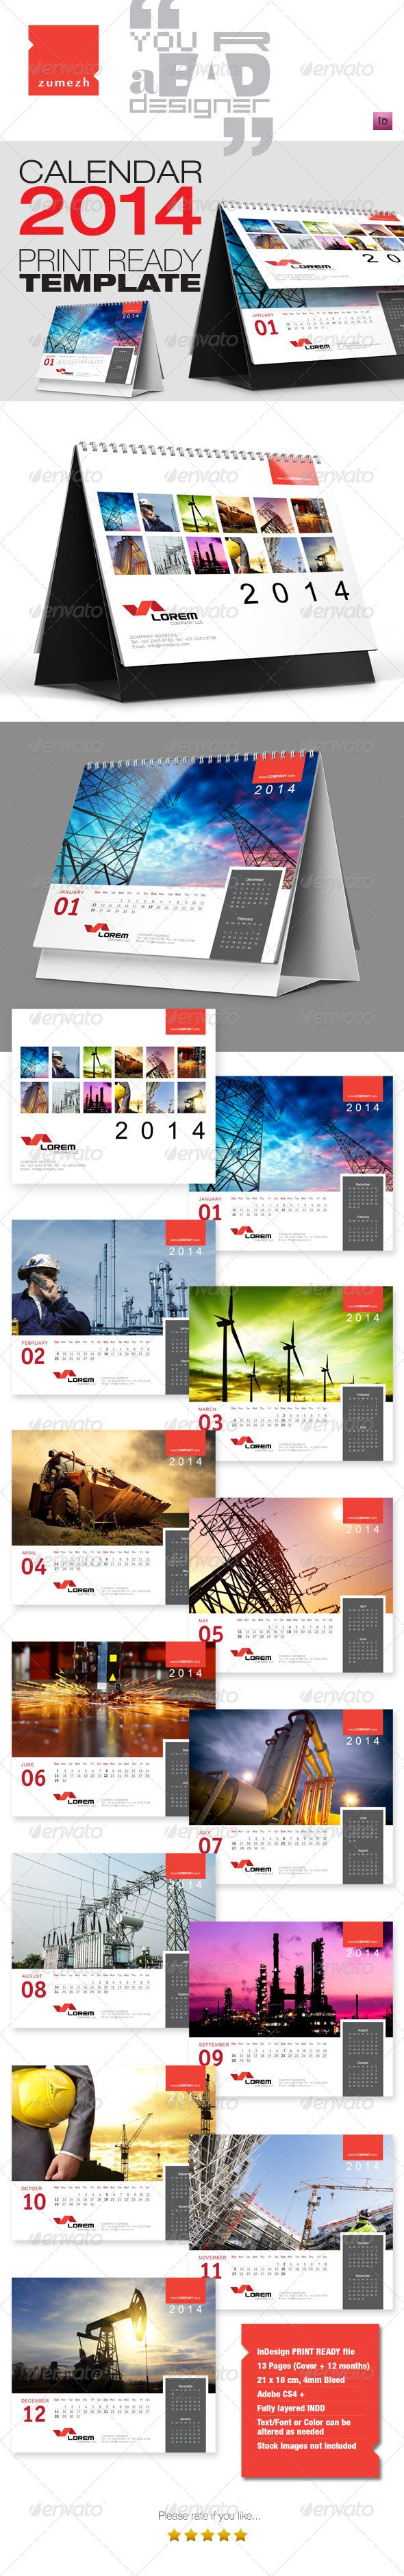 Premium Desktop Calendar 2014  #GraphicRiver         Fully Layered Adobe InDesign file, contains 13 pages (1 cover page and 12 months). Clean layout, suitable for corporate calendar designs. Print ready layout with 4mm bleed. Simply add the corporate logo and contact details in each page and change the stock images as per your requirements. The stock images shown in the preview are not included in the package